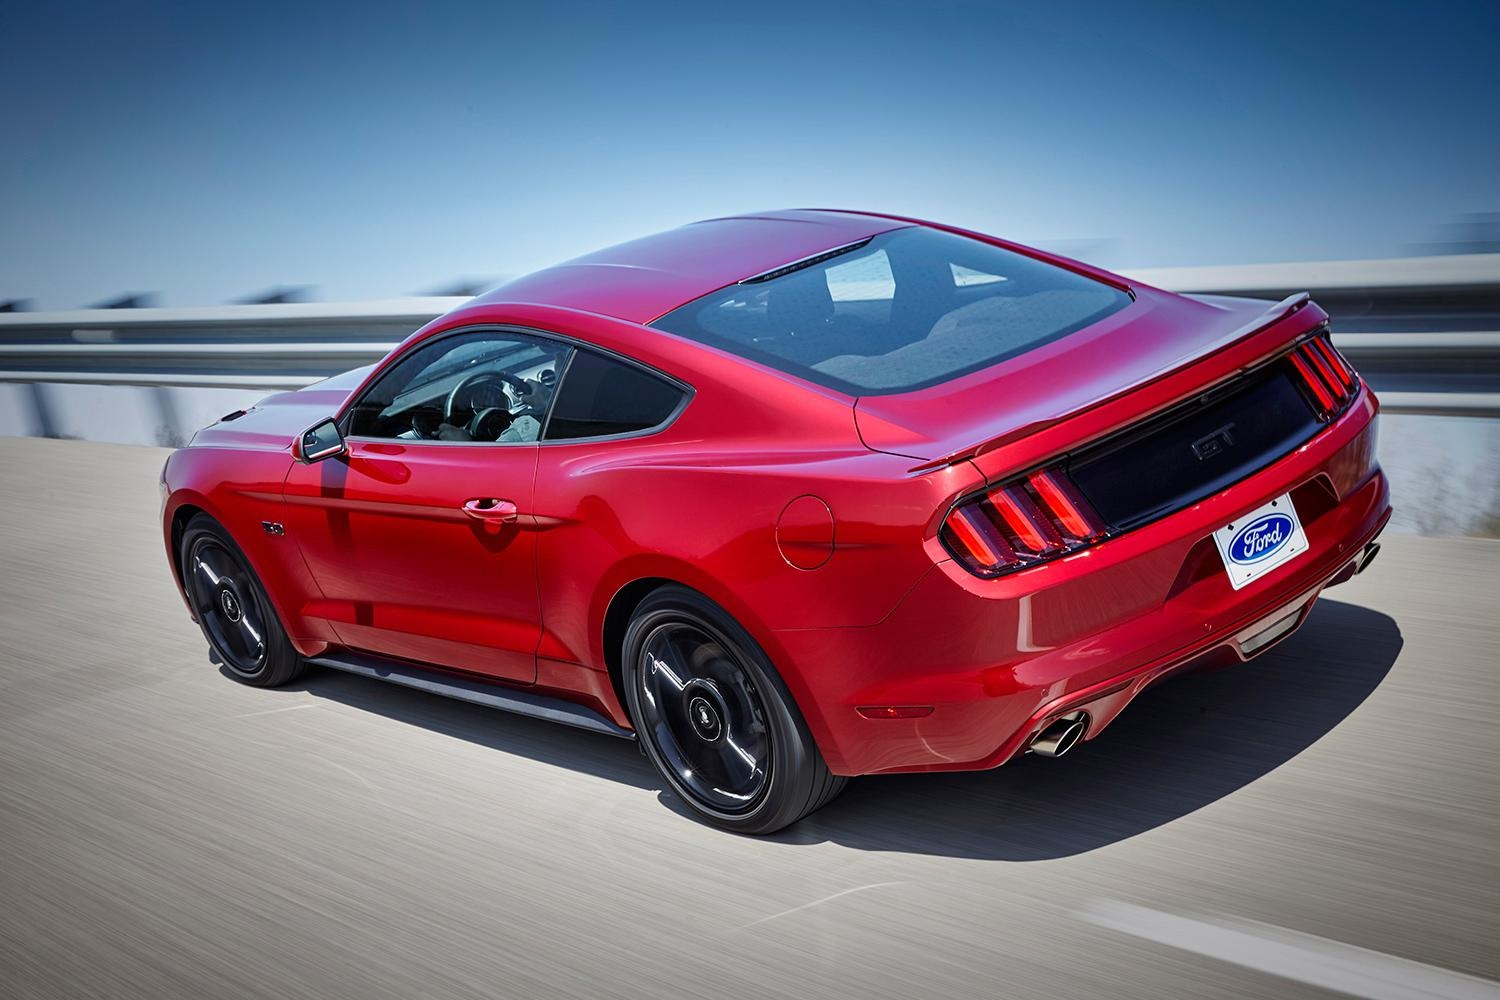 2016 ford mustang v – pictures, information and specs - auto